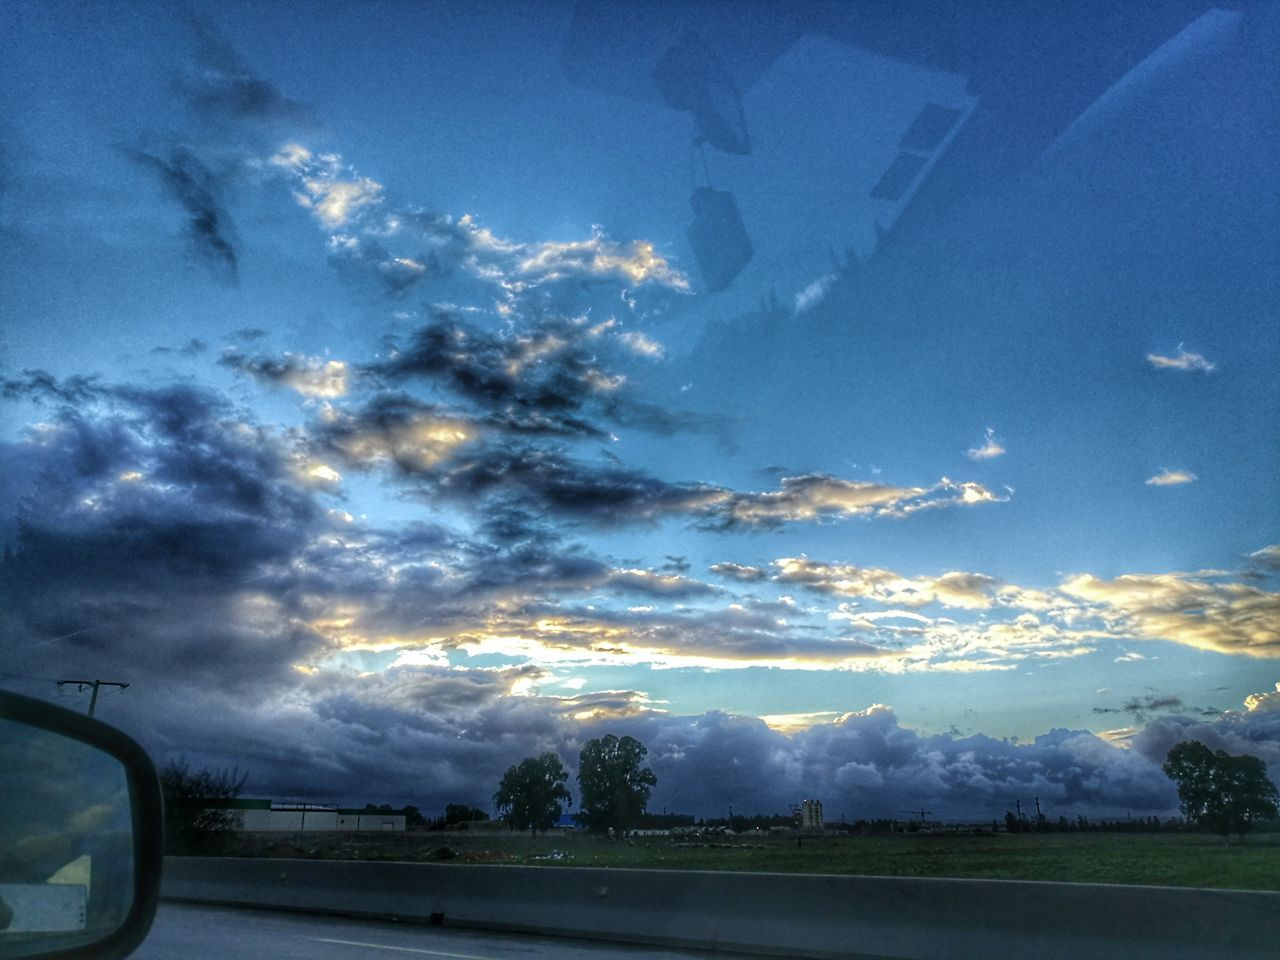 sky, cloud - sky, transportation, car, road, mode of transport, nature, land vehicle, no people, tree, day, outdoors, beauty in nature